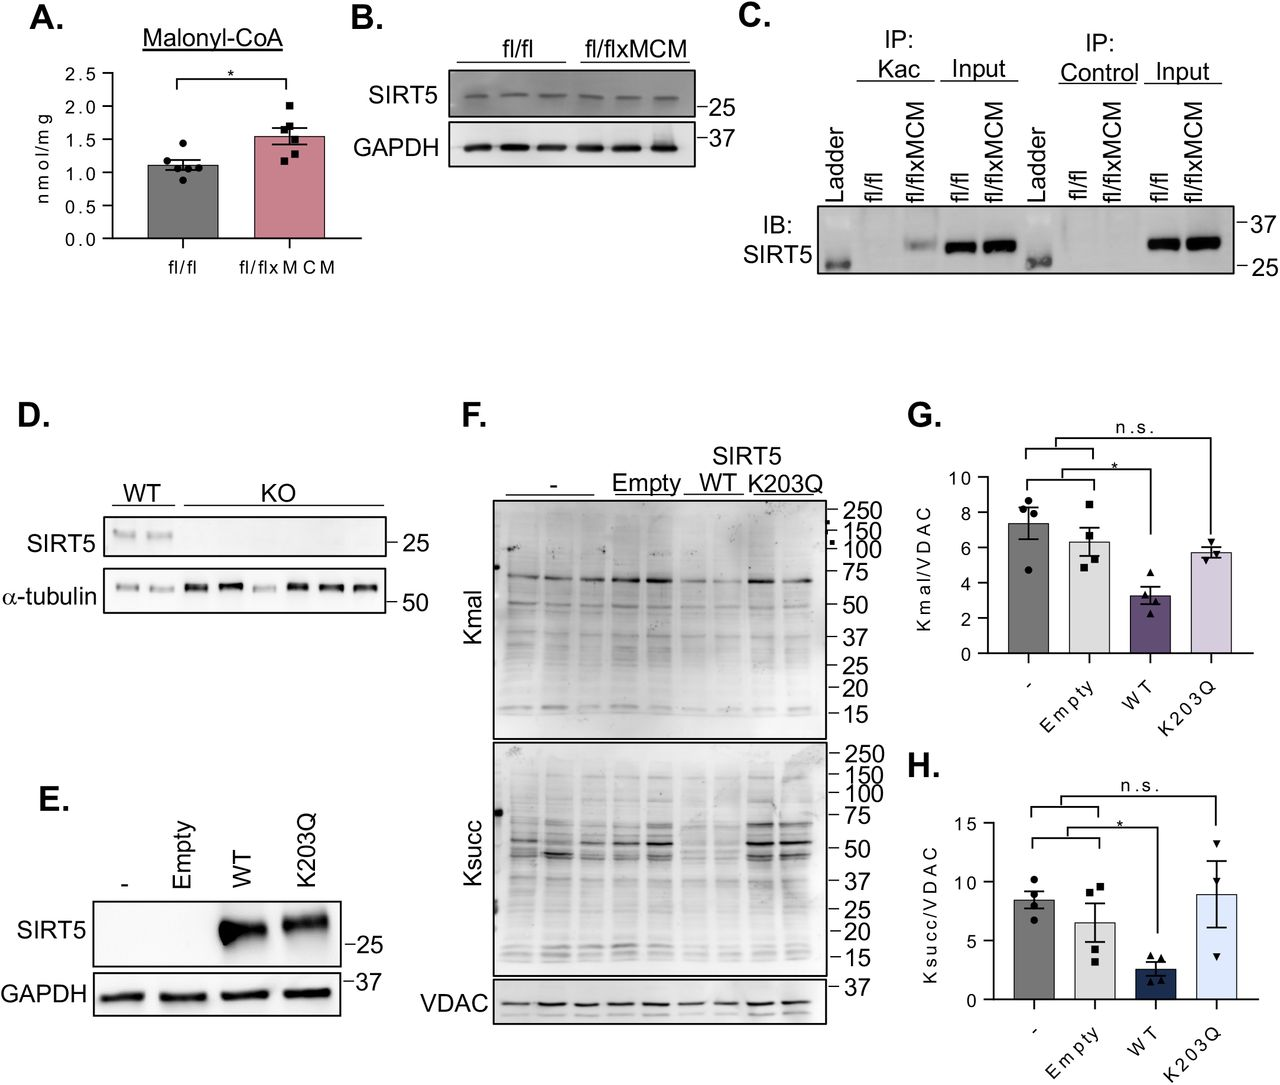 Acetylation of SIRT5 modulates malonylation status of mitochondrial proteins. (A) Cardiac malonyl-CoA levels in Slc25a3 fl/fl versus Slc25a3 fl/flxMCM mice at 10 weeks post-tamoxifen administration. (B) Western blot analysis of SIRT5 expression in total heart protein lysates from Slc25a3 fl/fl versus Slc25a3 fl/flxMCM animals. GAPDH was used as a loading control. (C) Immunoprecipitation confirmation of enhanced SIRT5 acetylation in Slc25a3 fl/flxMCM versus Slc25a3 fl/fl hearts. Acetylated proteins were immunoprecipated with anti-Kac antibodies followed by immunoblotting with an antibody against SIRT5. An anti-HA antibody was used as an immunoprecipitation control. (D) Western blot analysis of SIRT5 expression in HEK293 WT versus SIRT5 KO clones. α-tubulin was used as a protein loading control. (E) Western blot analysis of SIRT5 expression in SIRT5 KO cells re-expressing a pcDNA3.1 empty vector, WT SIRT5 or, the SIRT5 K203Q mutant. GAPDH was used as a loading control. (F) Representative western blot of protein lysine malonylation (Kmal) and succinylation (Ksuc) of mitochondria isolated from SIRT5 KO cells, or SIRT5 KO cells re-expressing the empty vector, WT SIRT5, or SIRT5 K203Q. VDAC was used as a loading control. (G) Quantification of protein malonylation in SIRT5 KO cells re-expressing the WT and K203Q SIRT5 constructs. (H) Quantification of protein succinylation in SIRT5 KO cells re-expressing the WT and K203Q SIRT5 constructs. One way ANOVA followed by Welch's test was used for statistical analysis with P